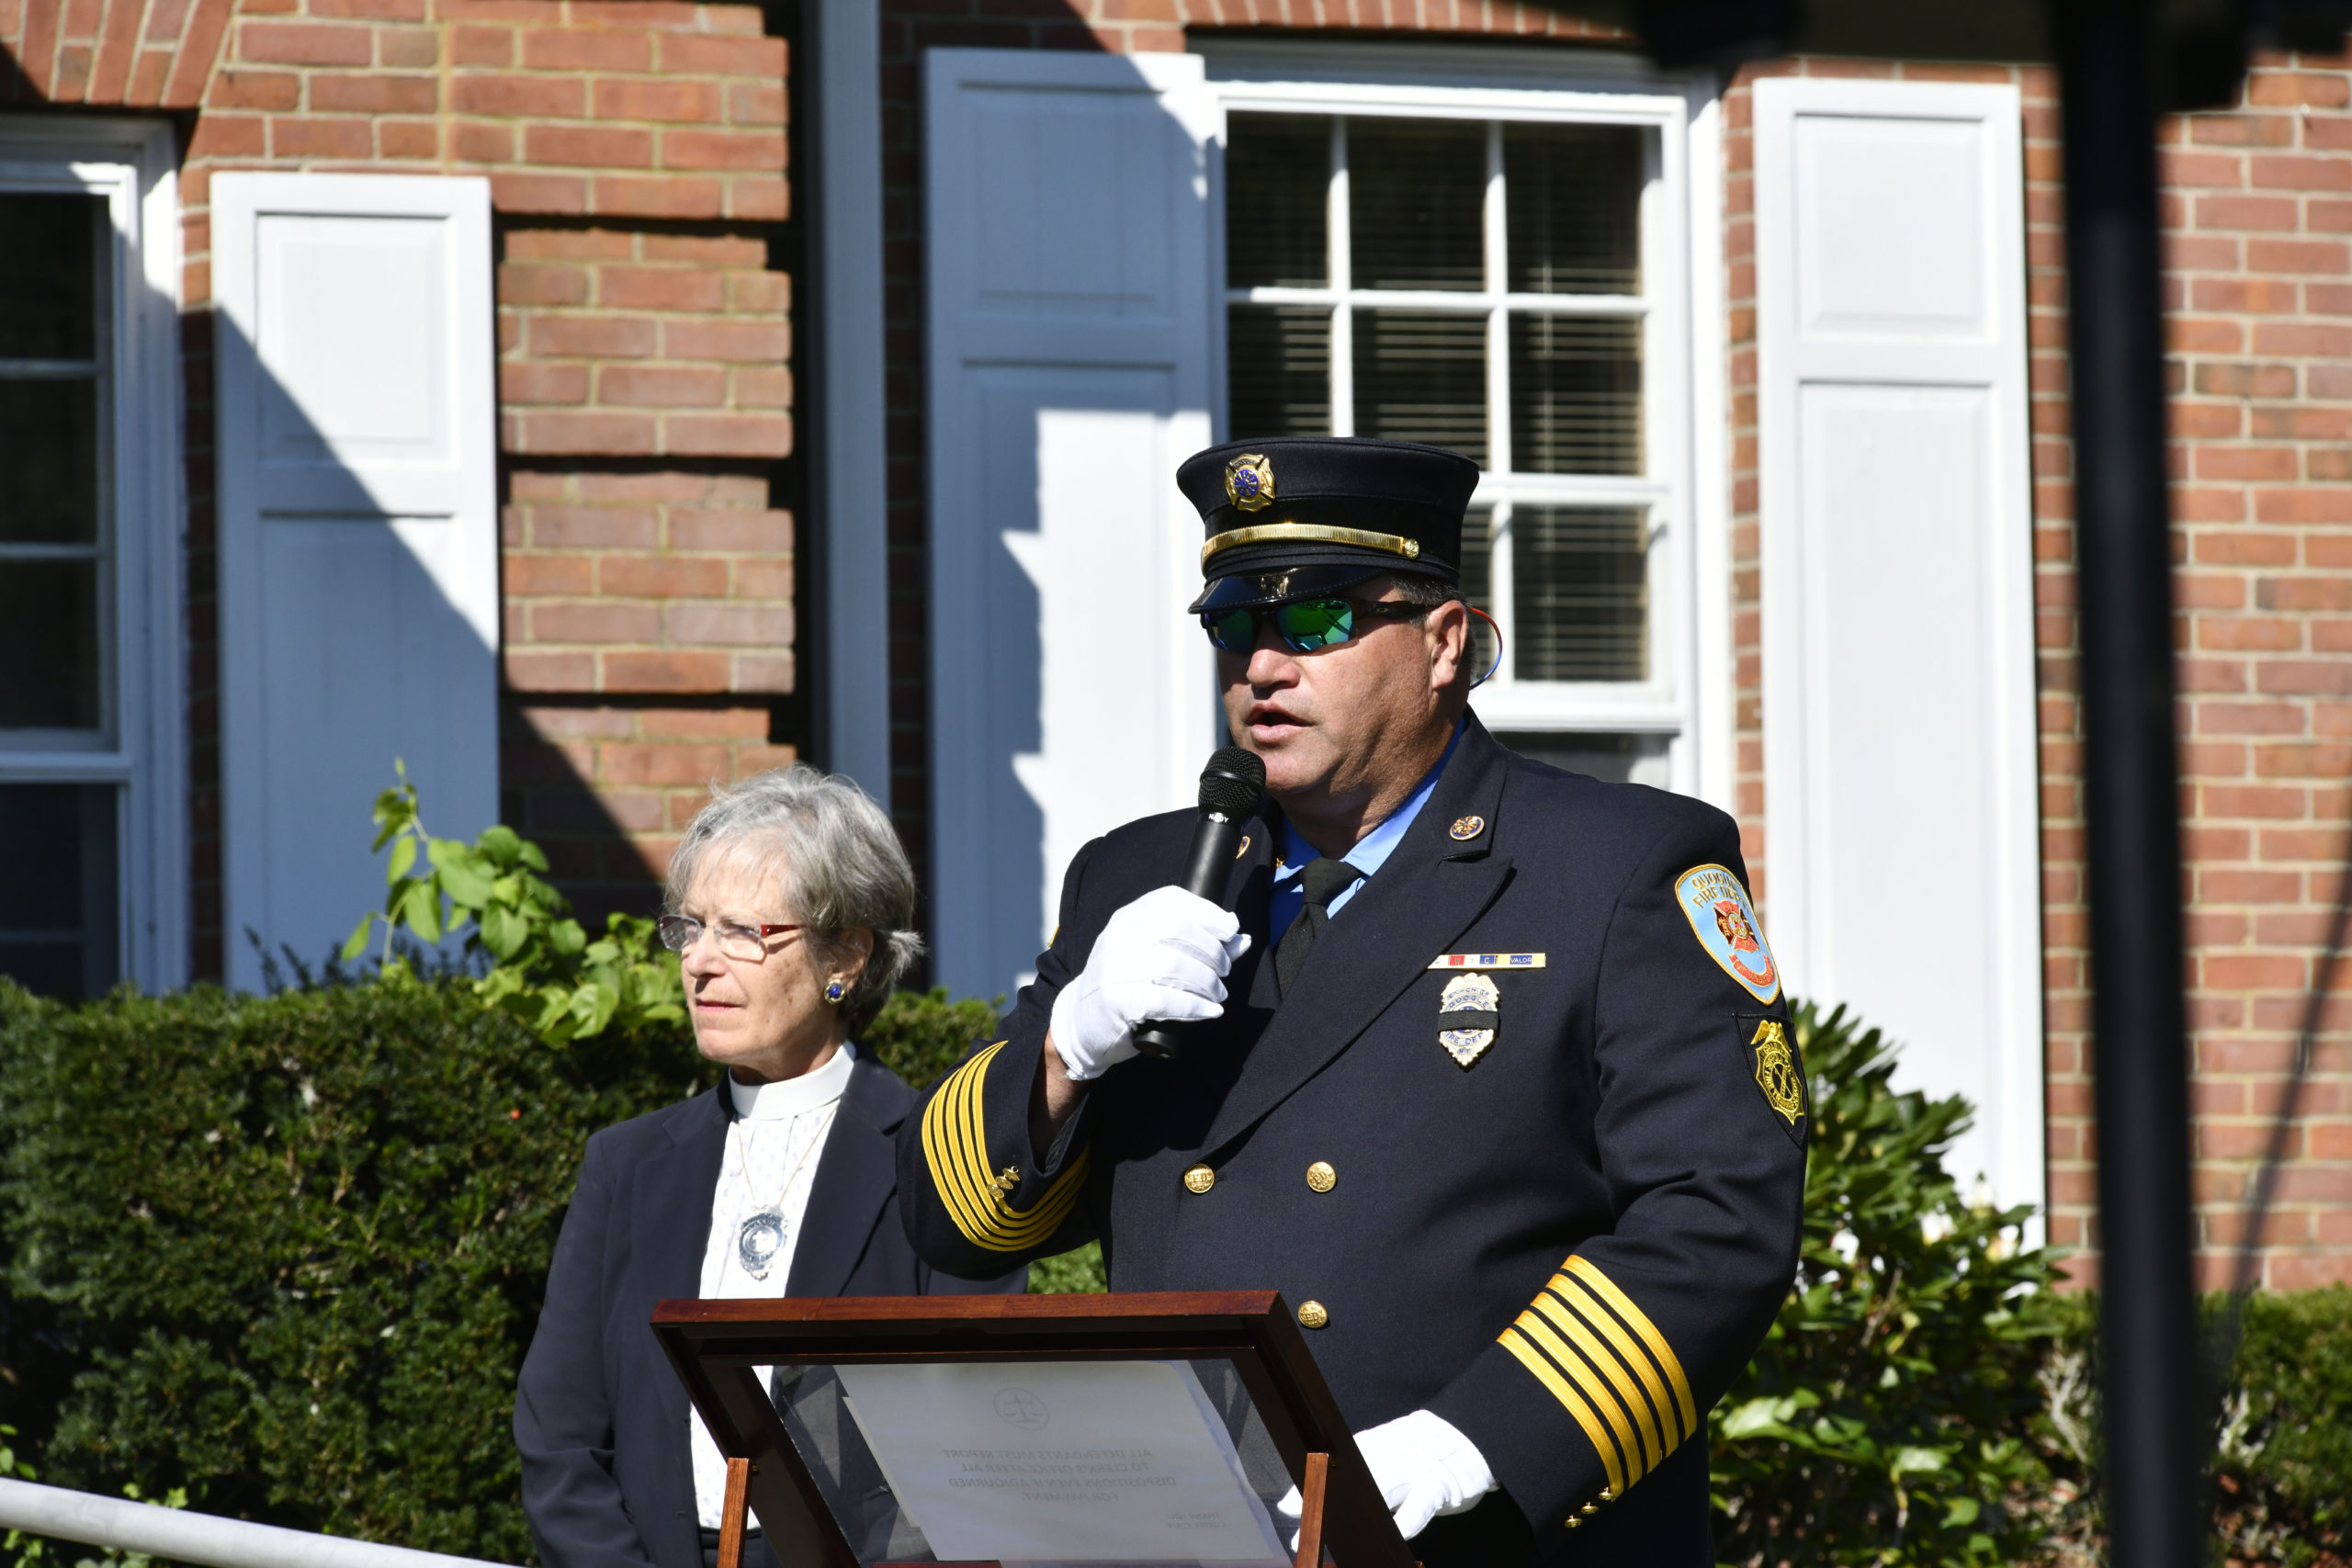 Quogue Fire Department Ex-Chief Chris Osborne welcomes the crowd the memorial rededication ceremony on Saturday.